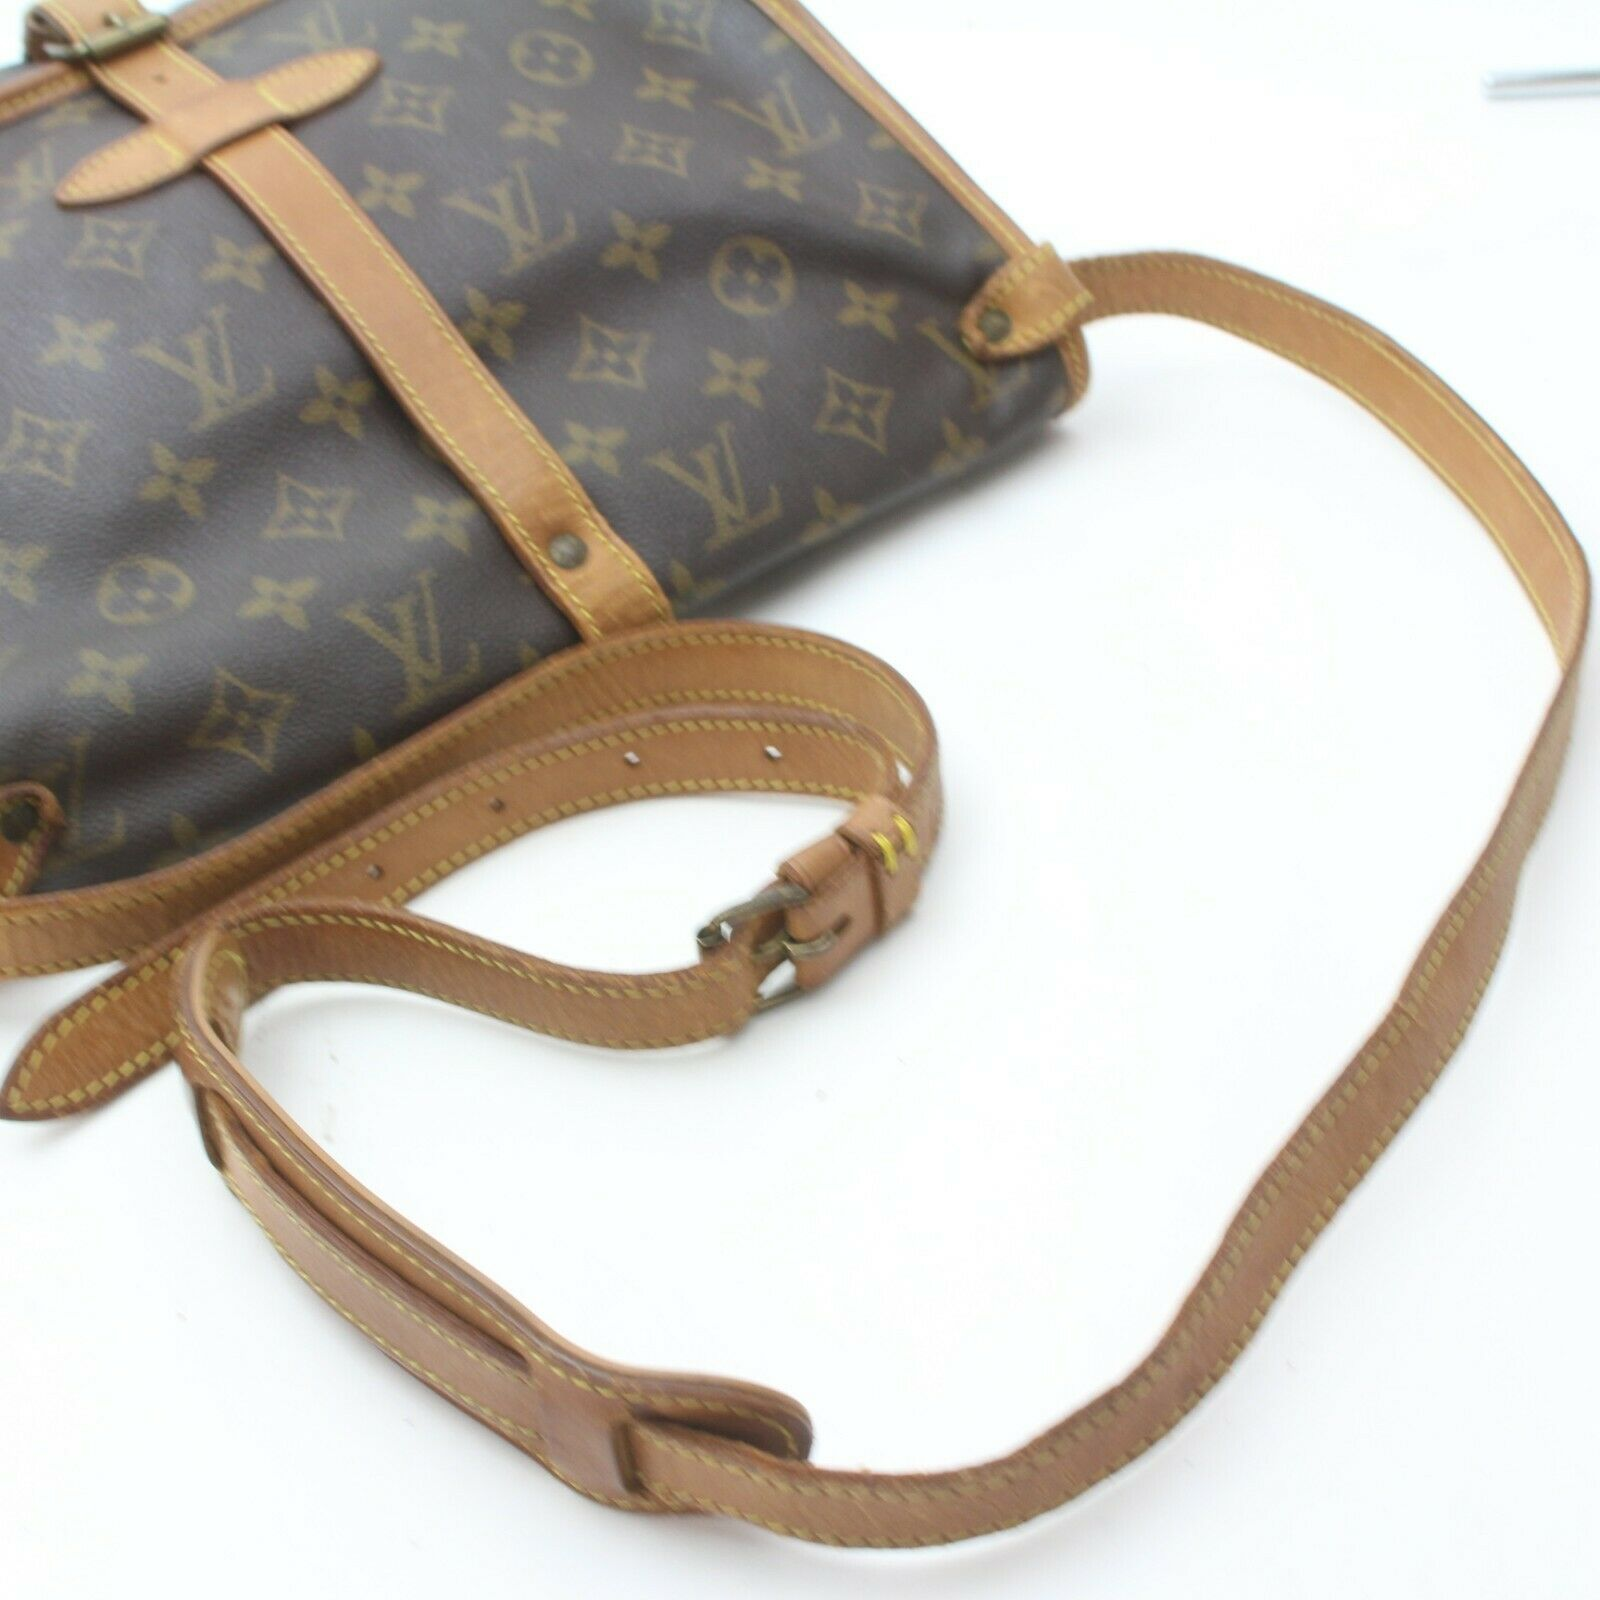 Louis Vuitton Saumur 30 M42256 Brown Monogram Shoulder Bag 11524